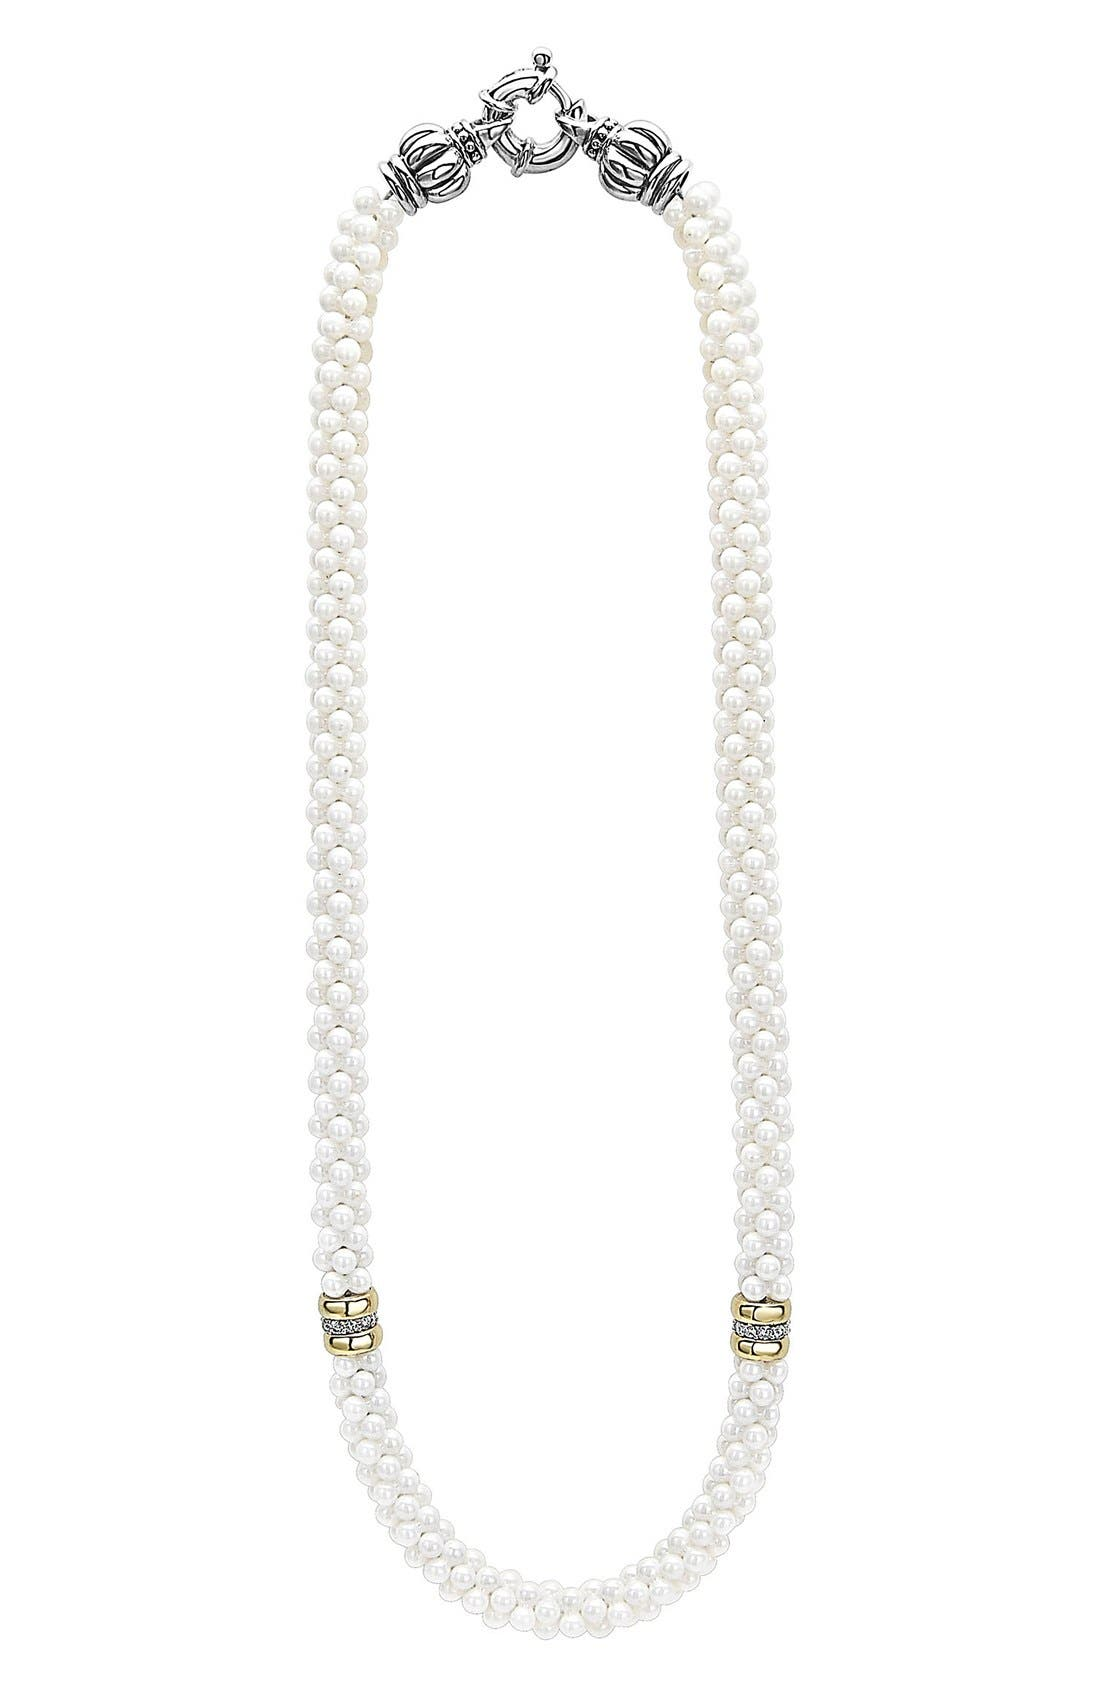 LAGOS 'White Caviar' 7mm Beaded Diamond Station Necklace